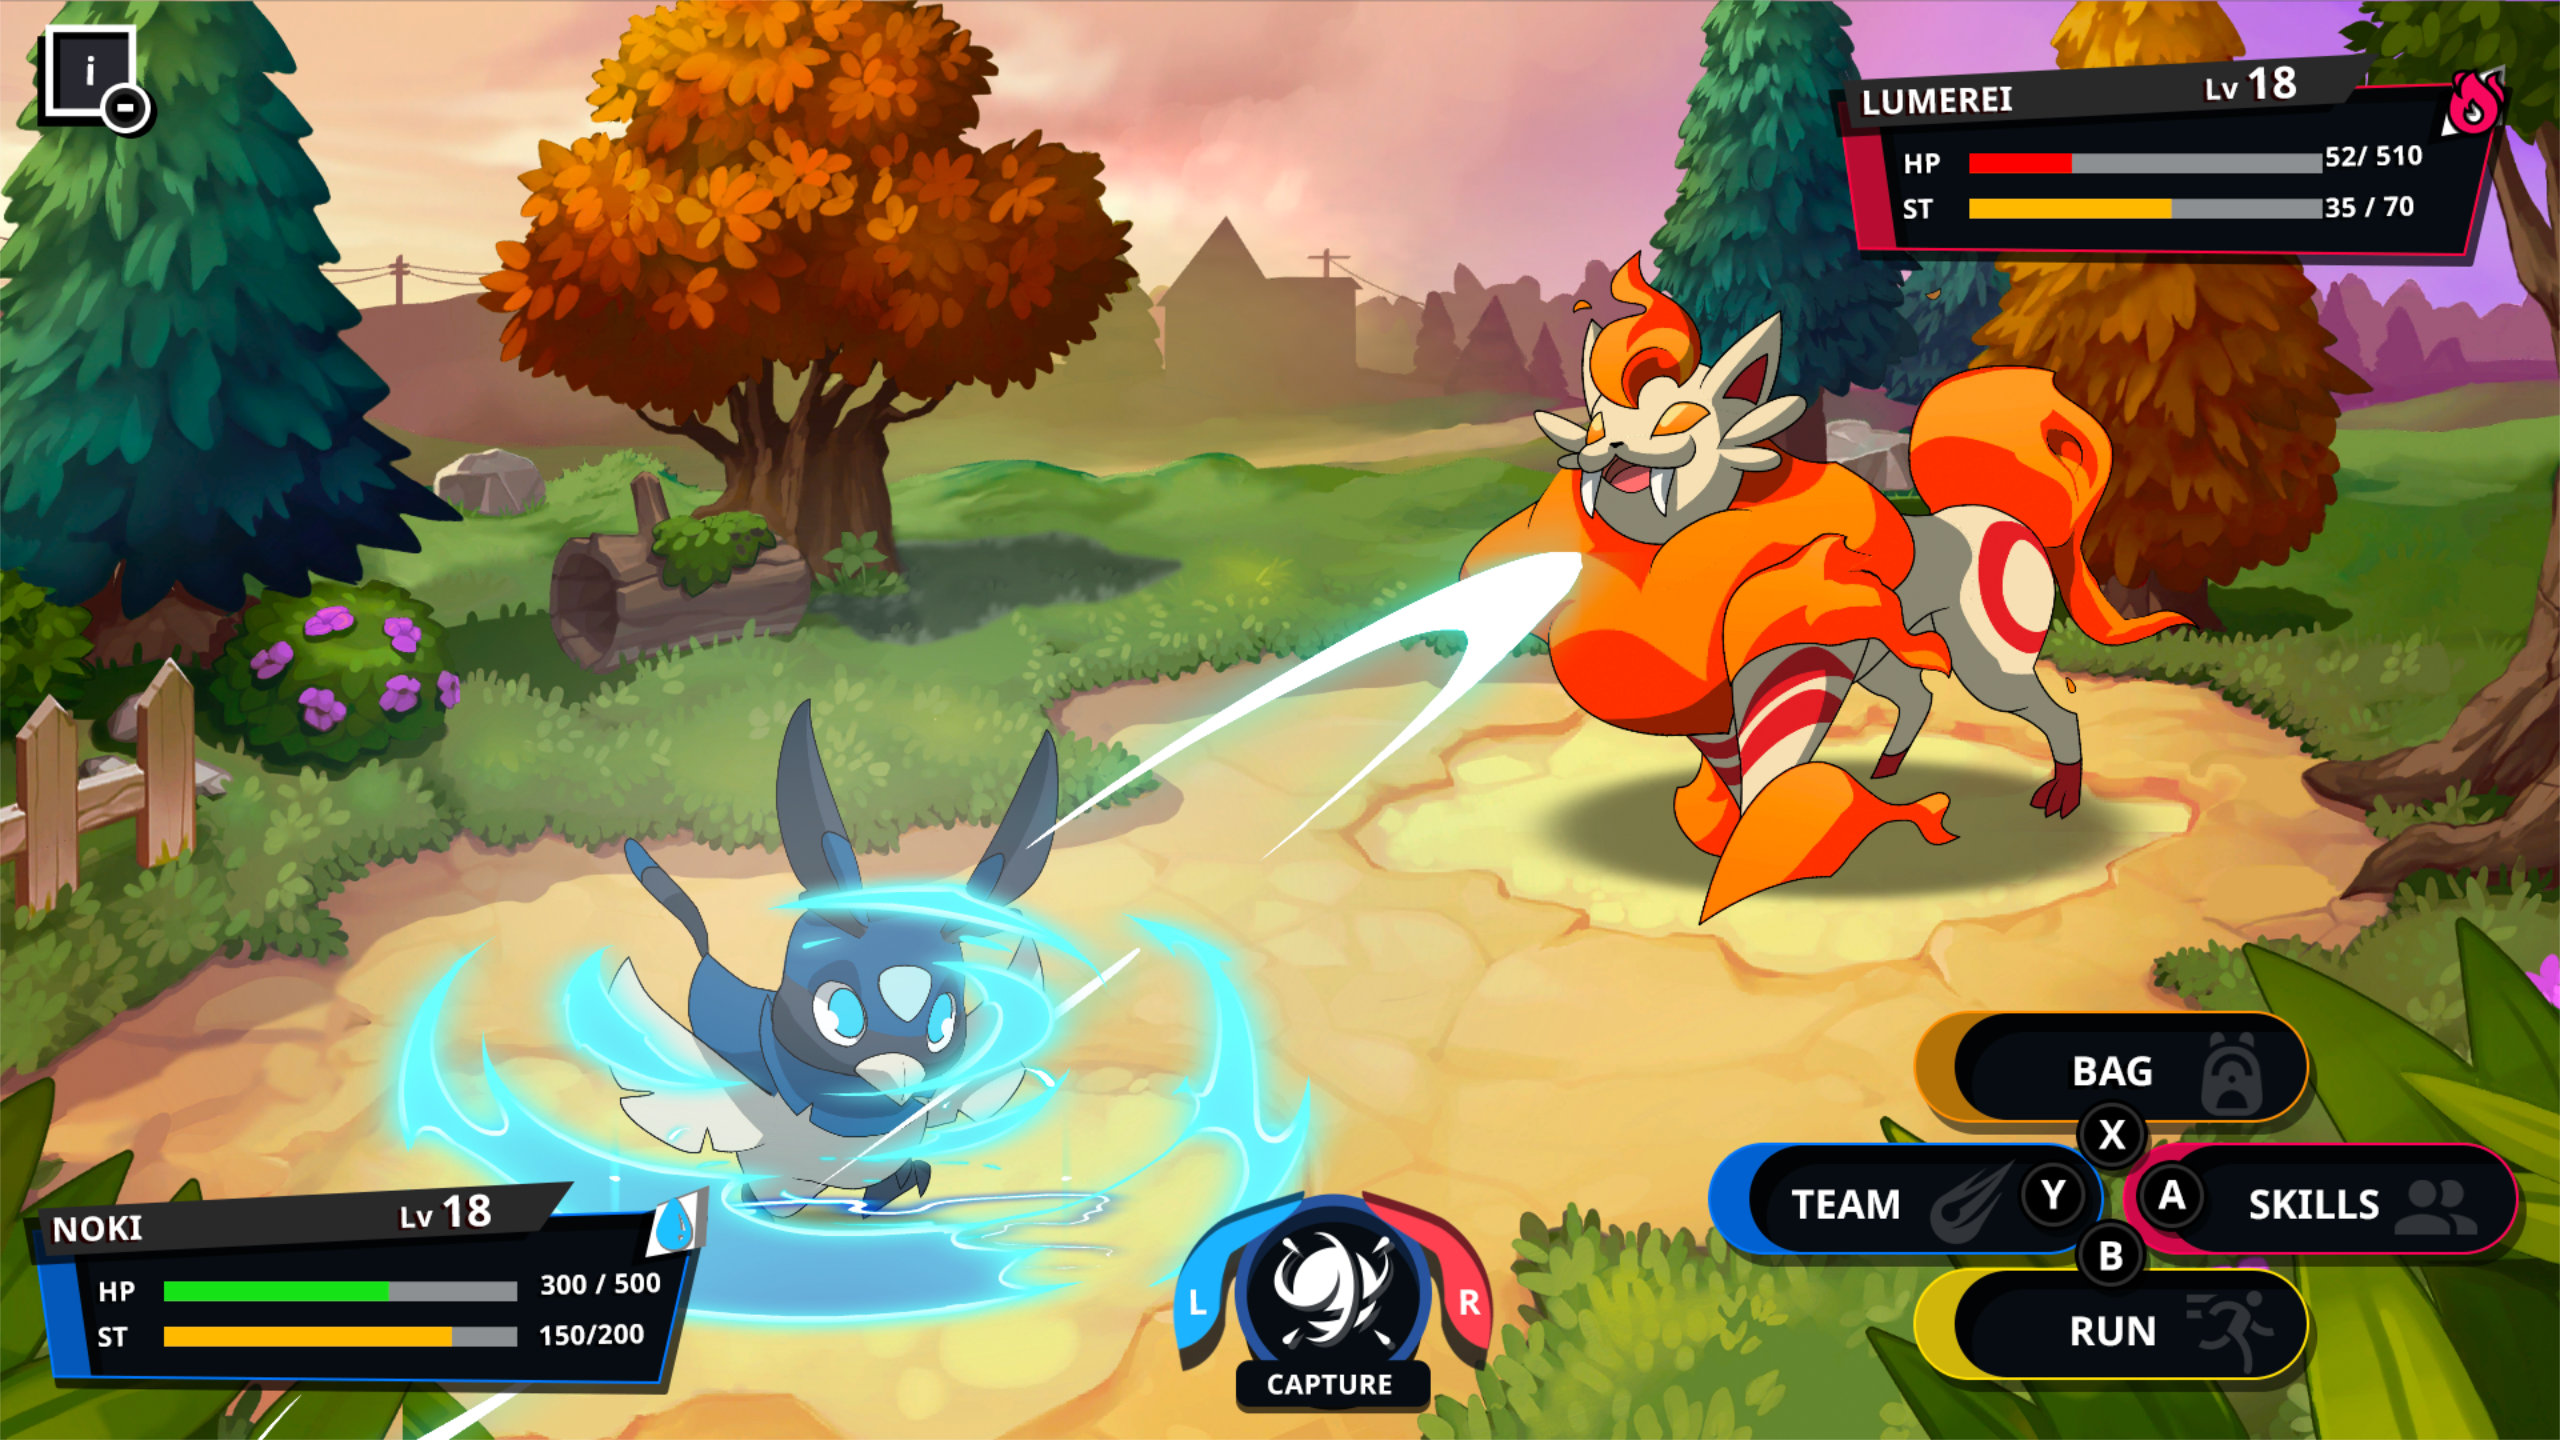 A battle between very different elemental types; a blue energy spiral in the lower left surrounding a birdlike creature, with a fluffy red cat creature in the upper right.